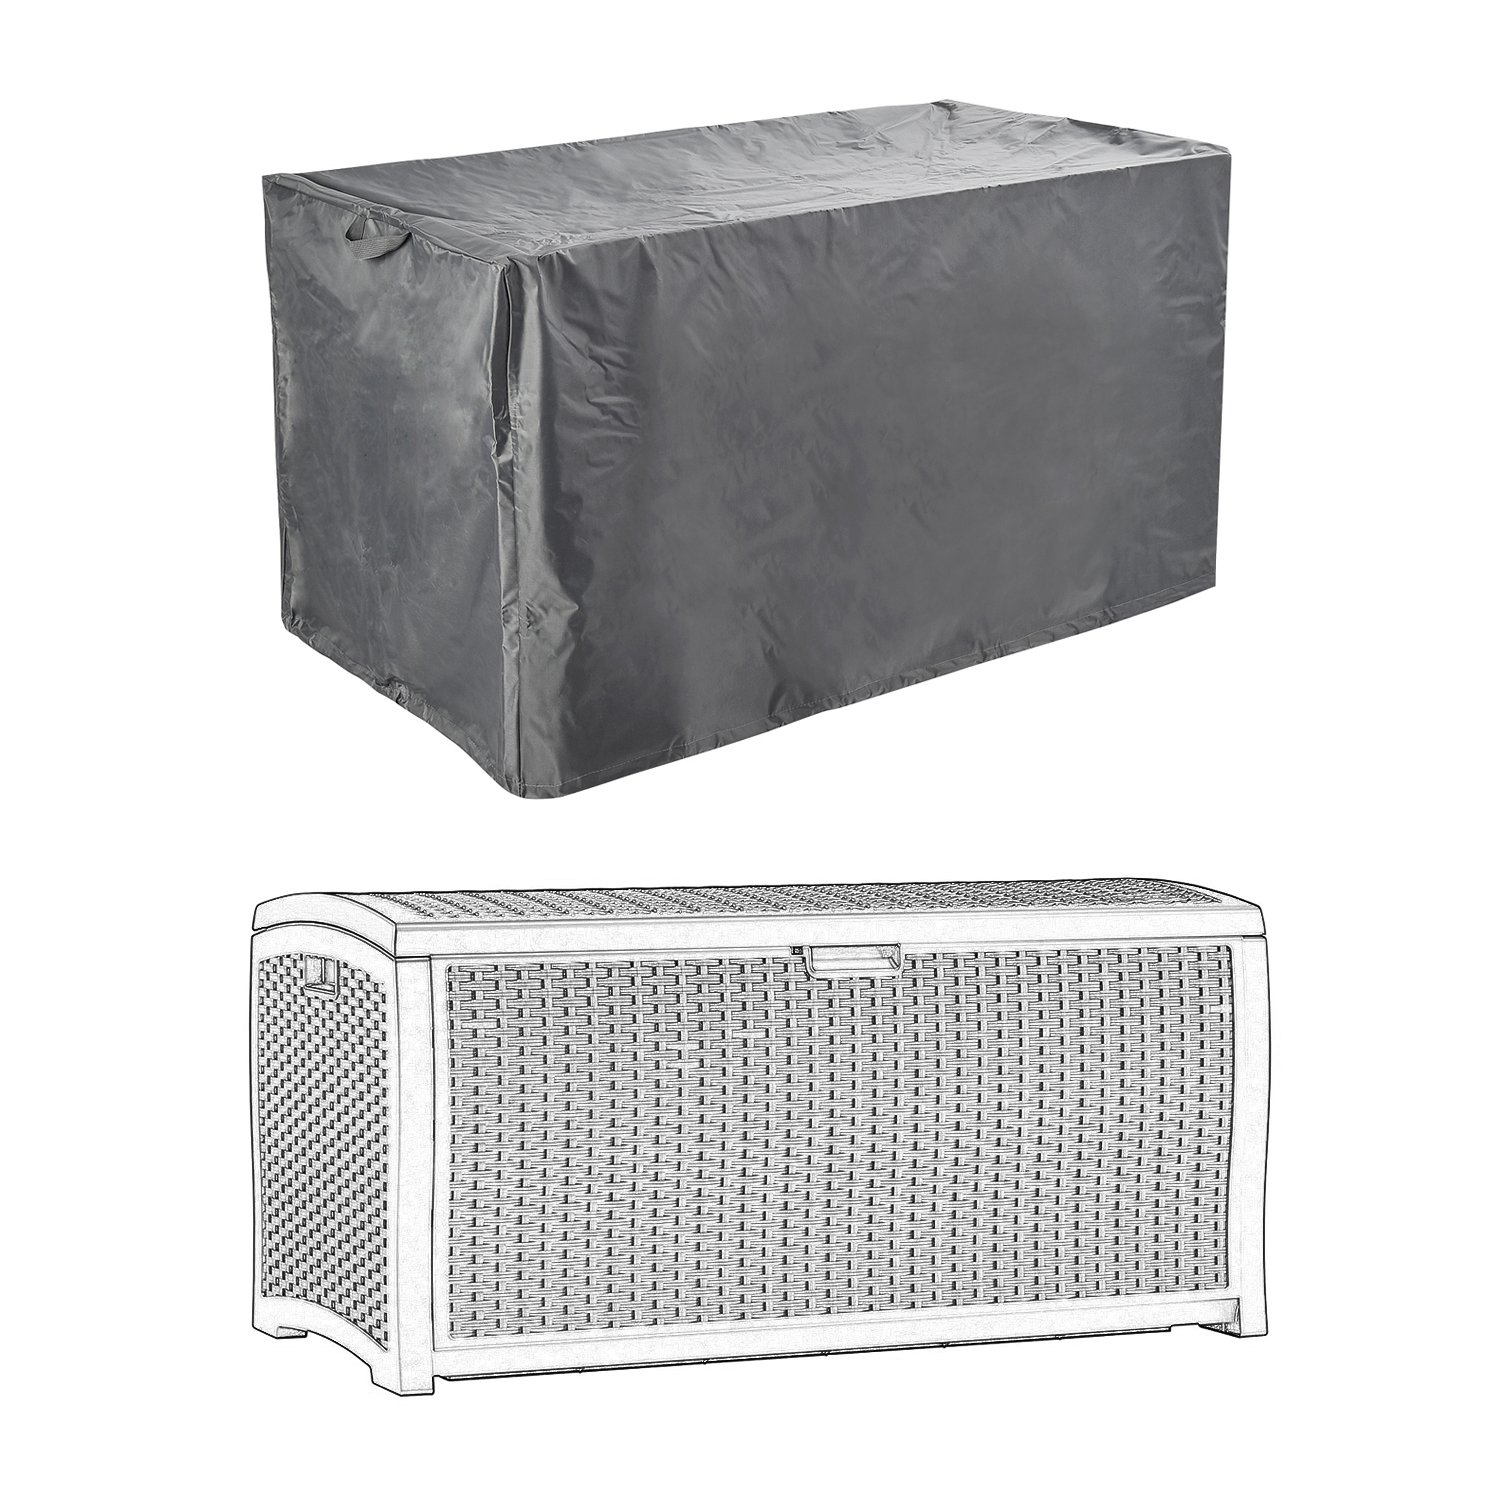 Patio Deck Box Cover to Protect Large Deck Boxes 52L x 26W x 26D CKClub